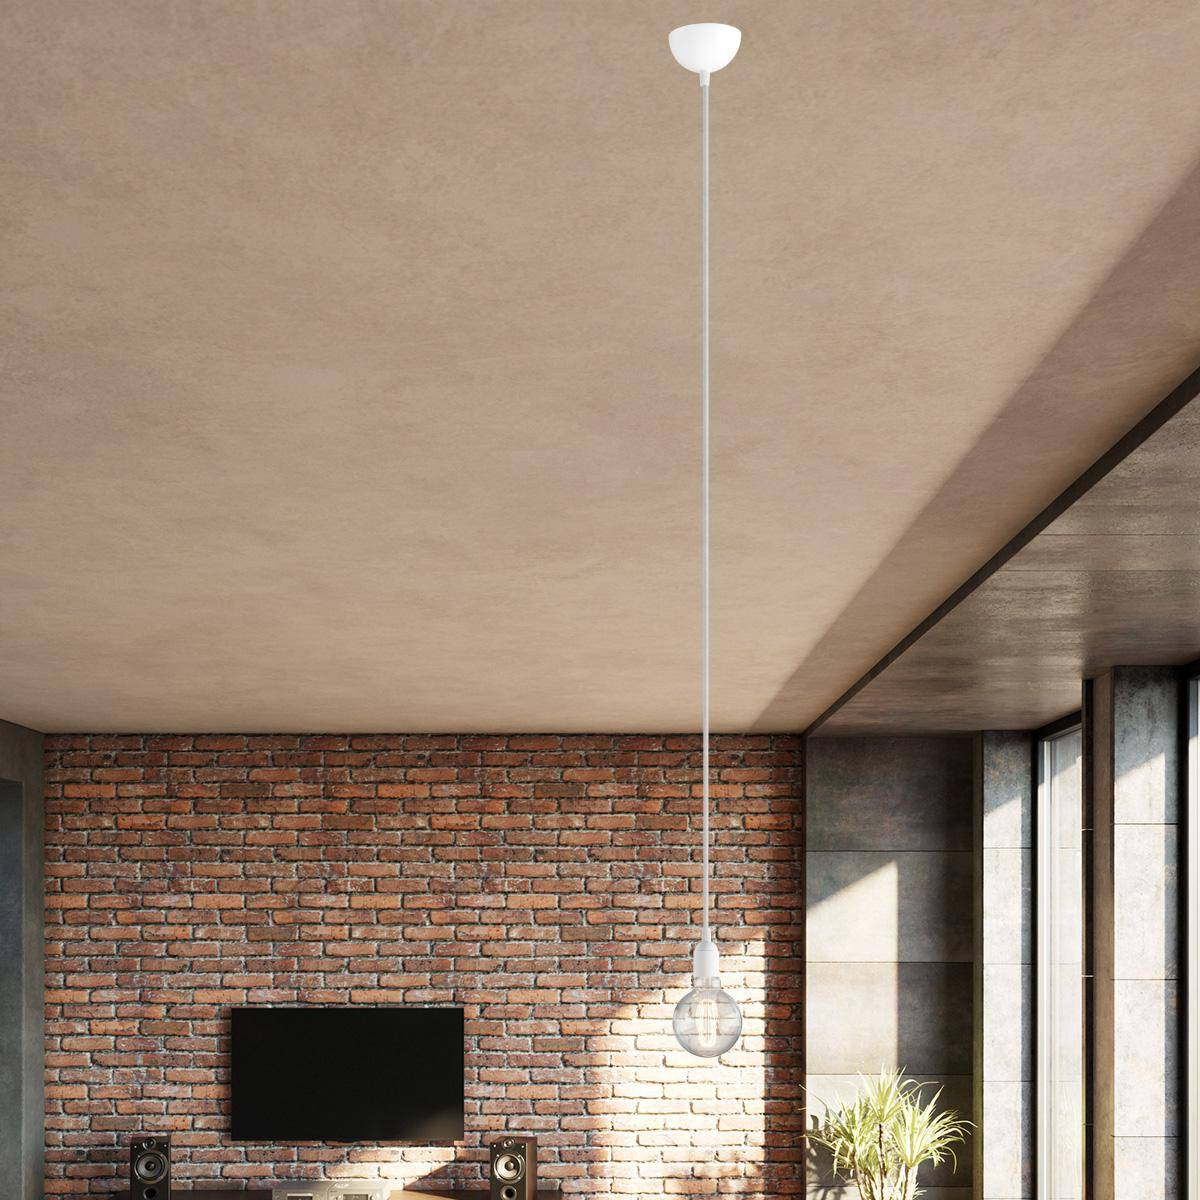 Single Pendant Lighting with naked bulb